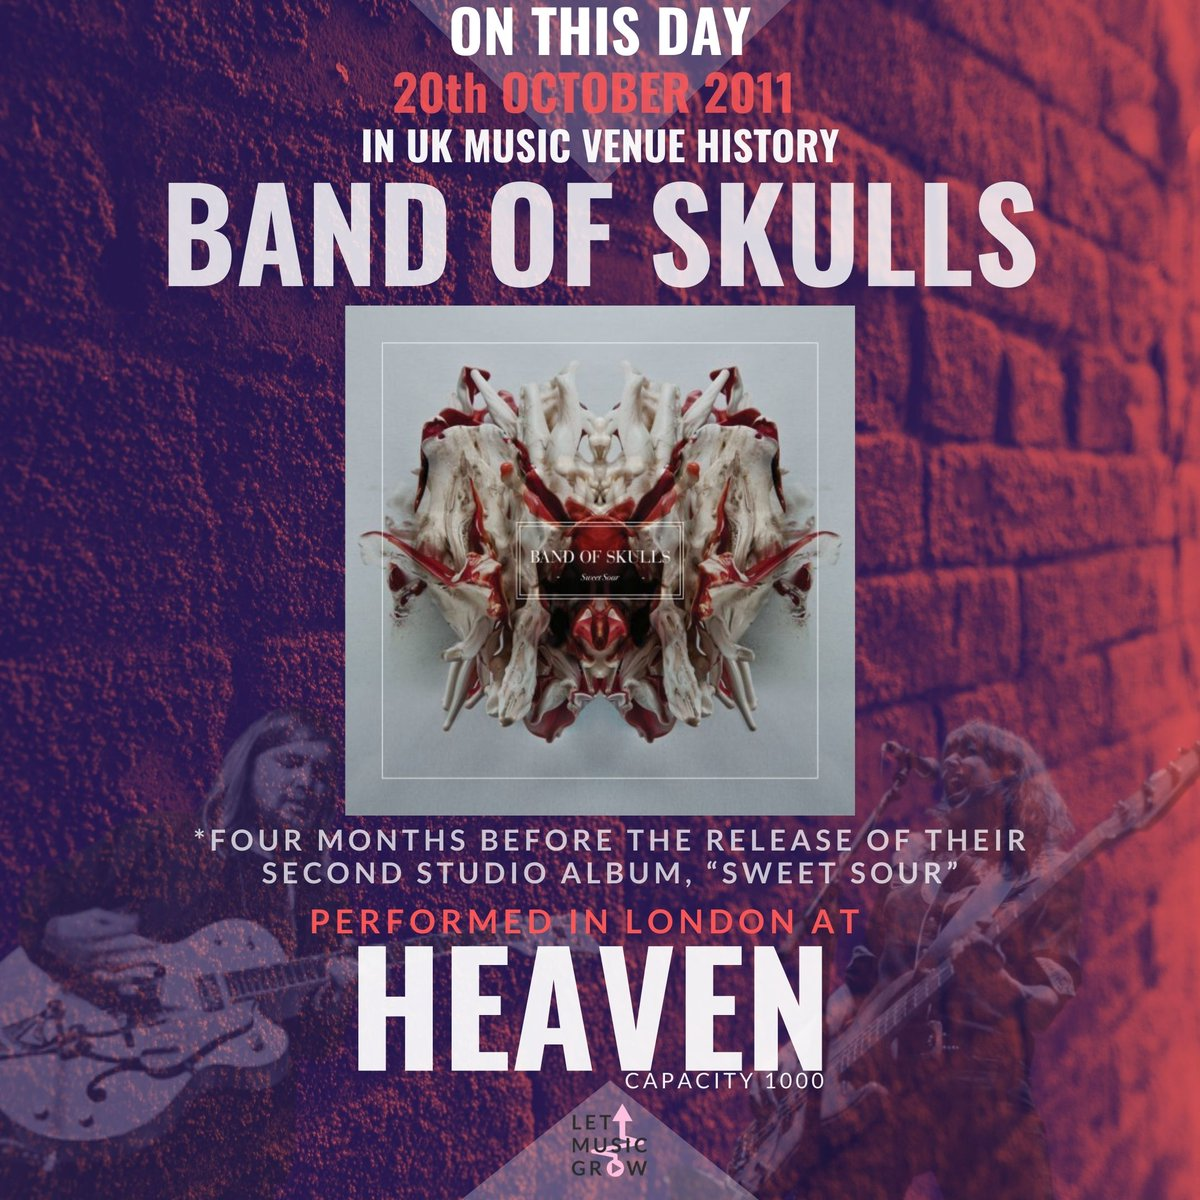 @bandofskulls @SoRecordings @bandofskullsBR #letmusicgrow #letthemusicplay #wemakeevents #saveourvenues #saveourstages #NIVA #MusicVenueTrust #fyp #onthisday #newmusic #follow #song #independentartist #like #indie #instagood #pop #studio #guitar #repost #indieartist #explore https://t.co/iMK9MfiVZR